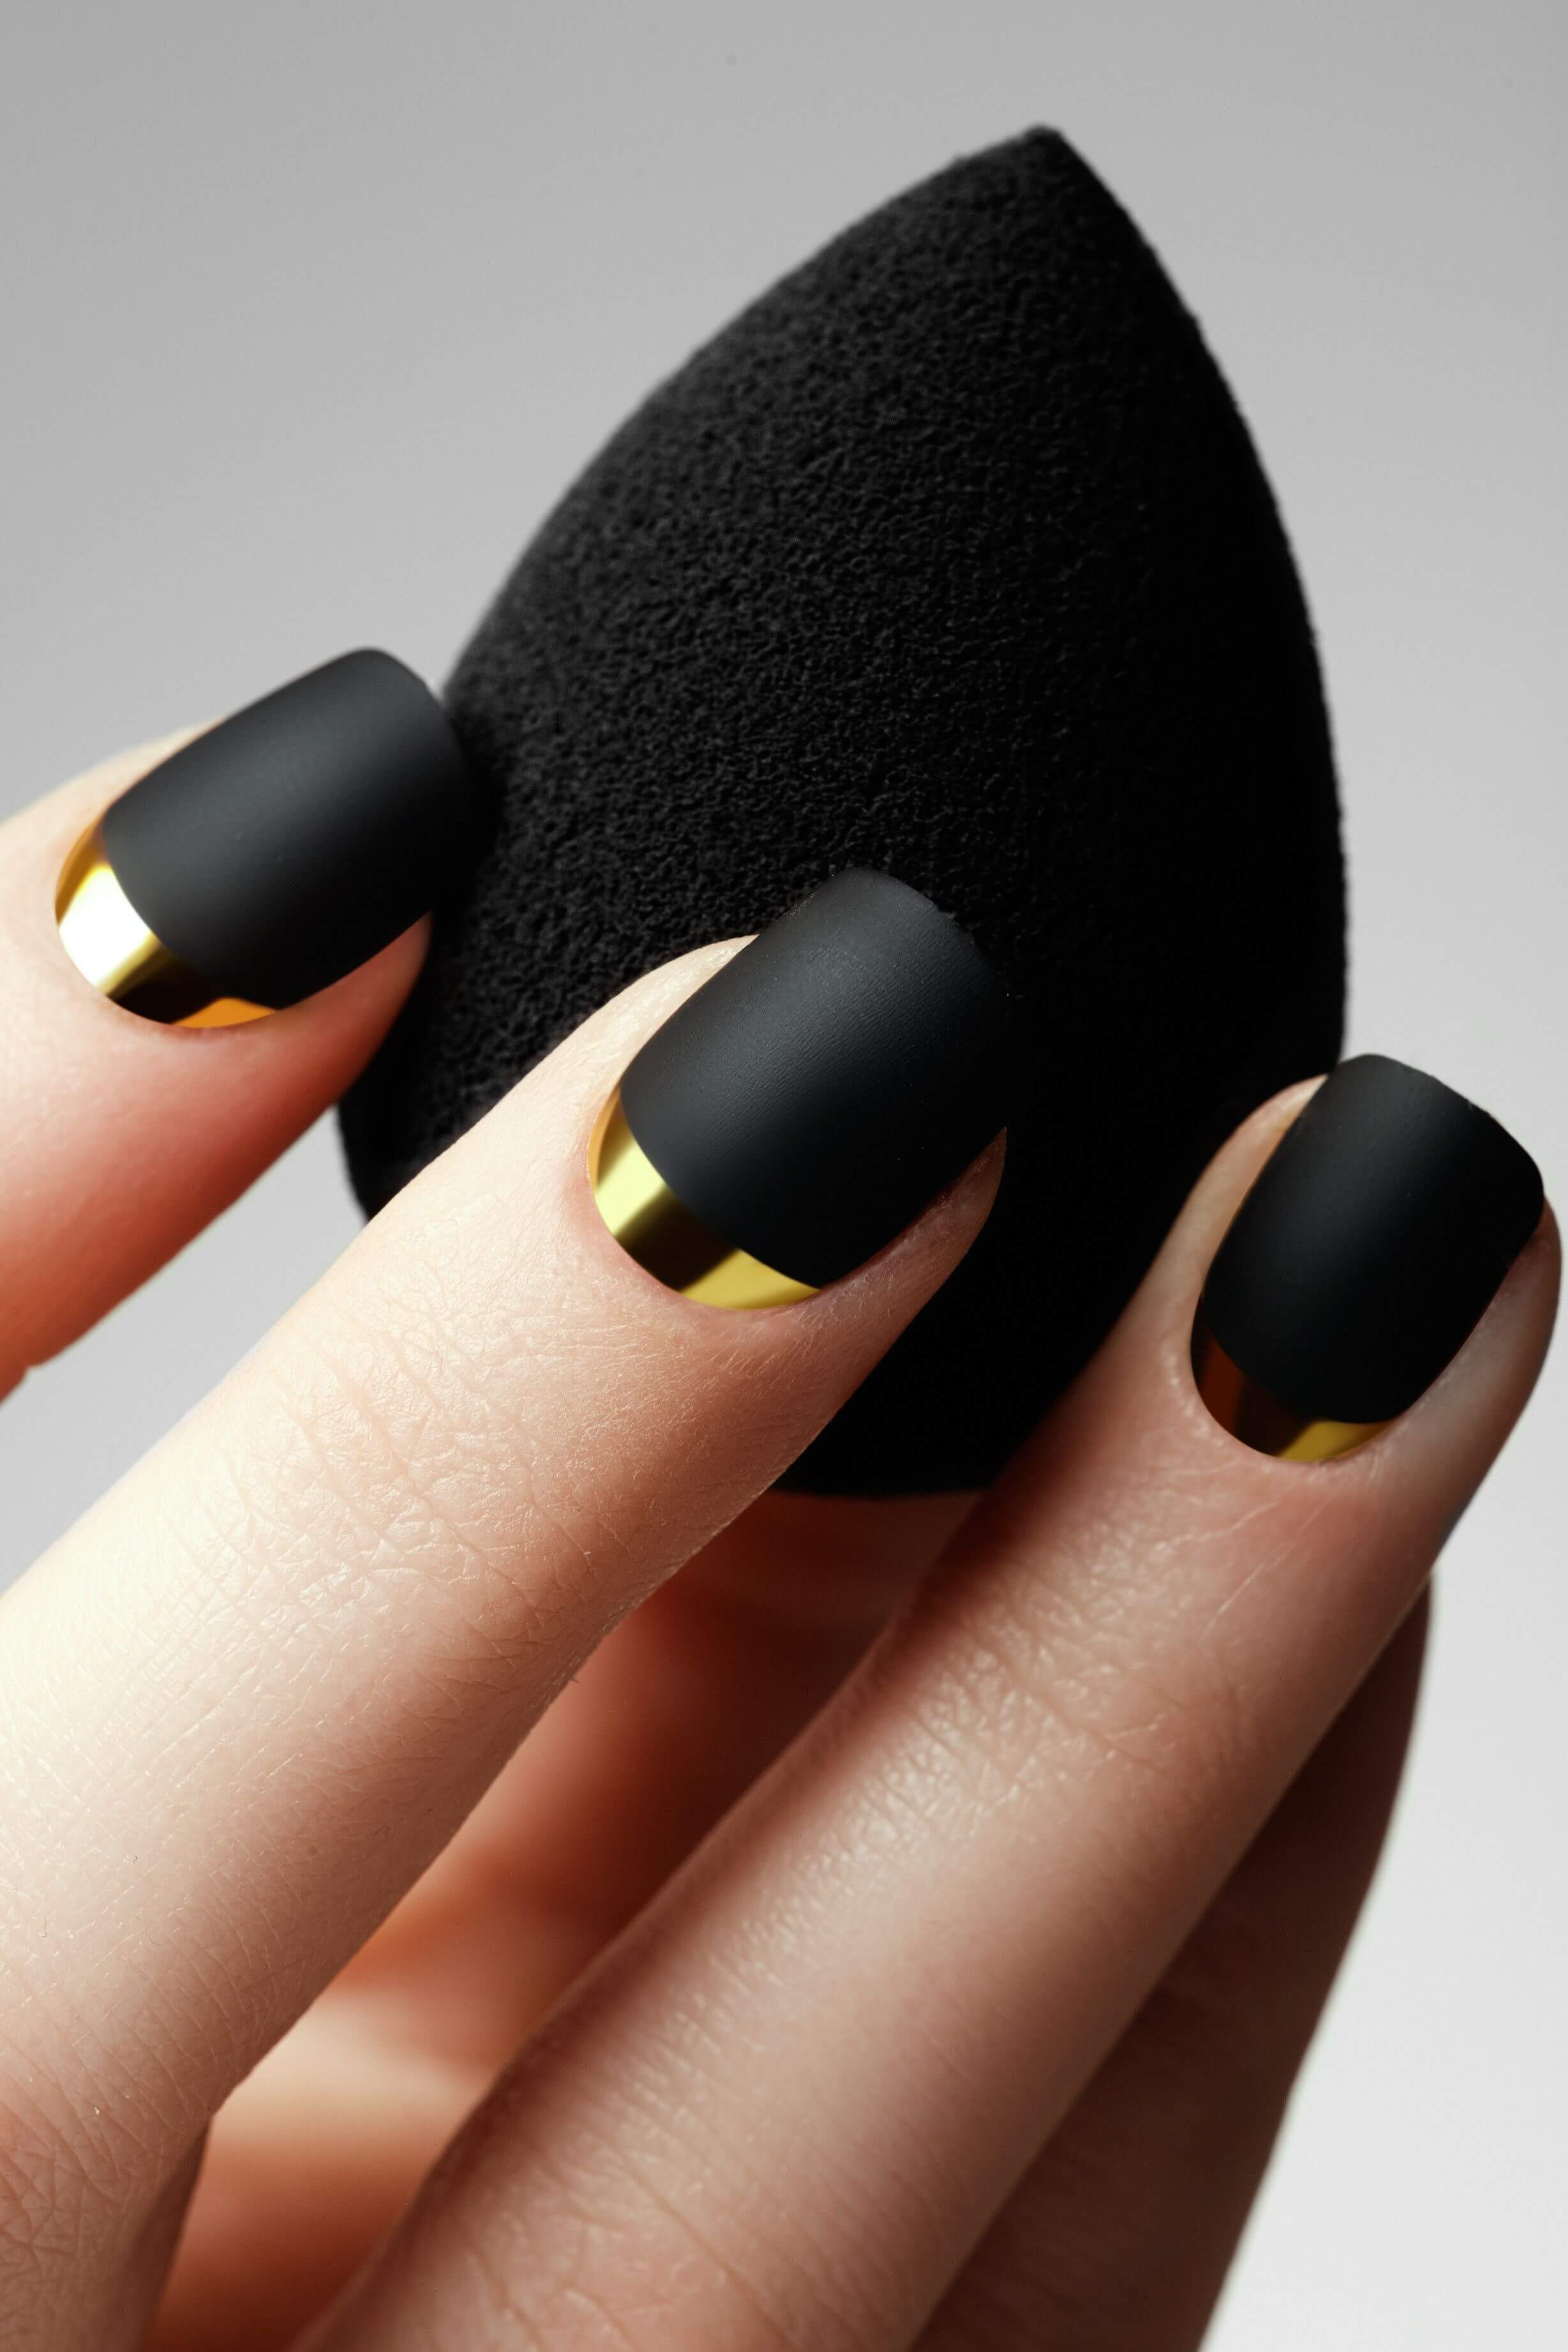 Stunning Black and Gold Manicure